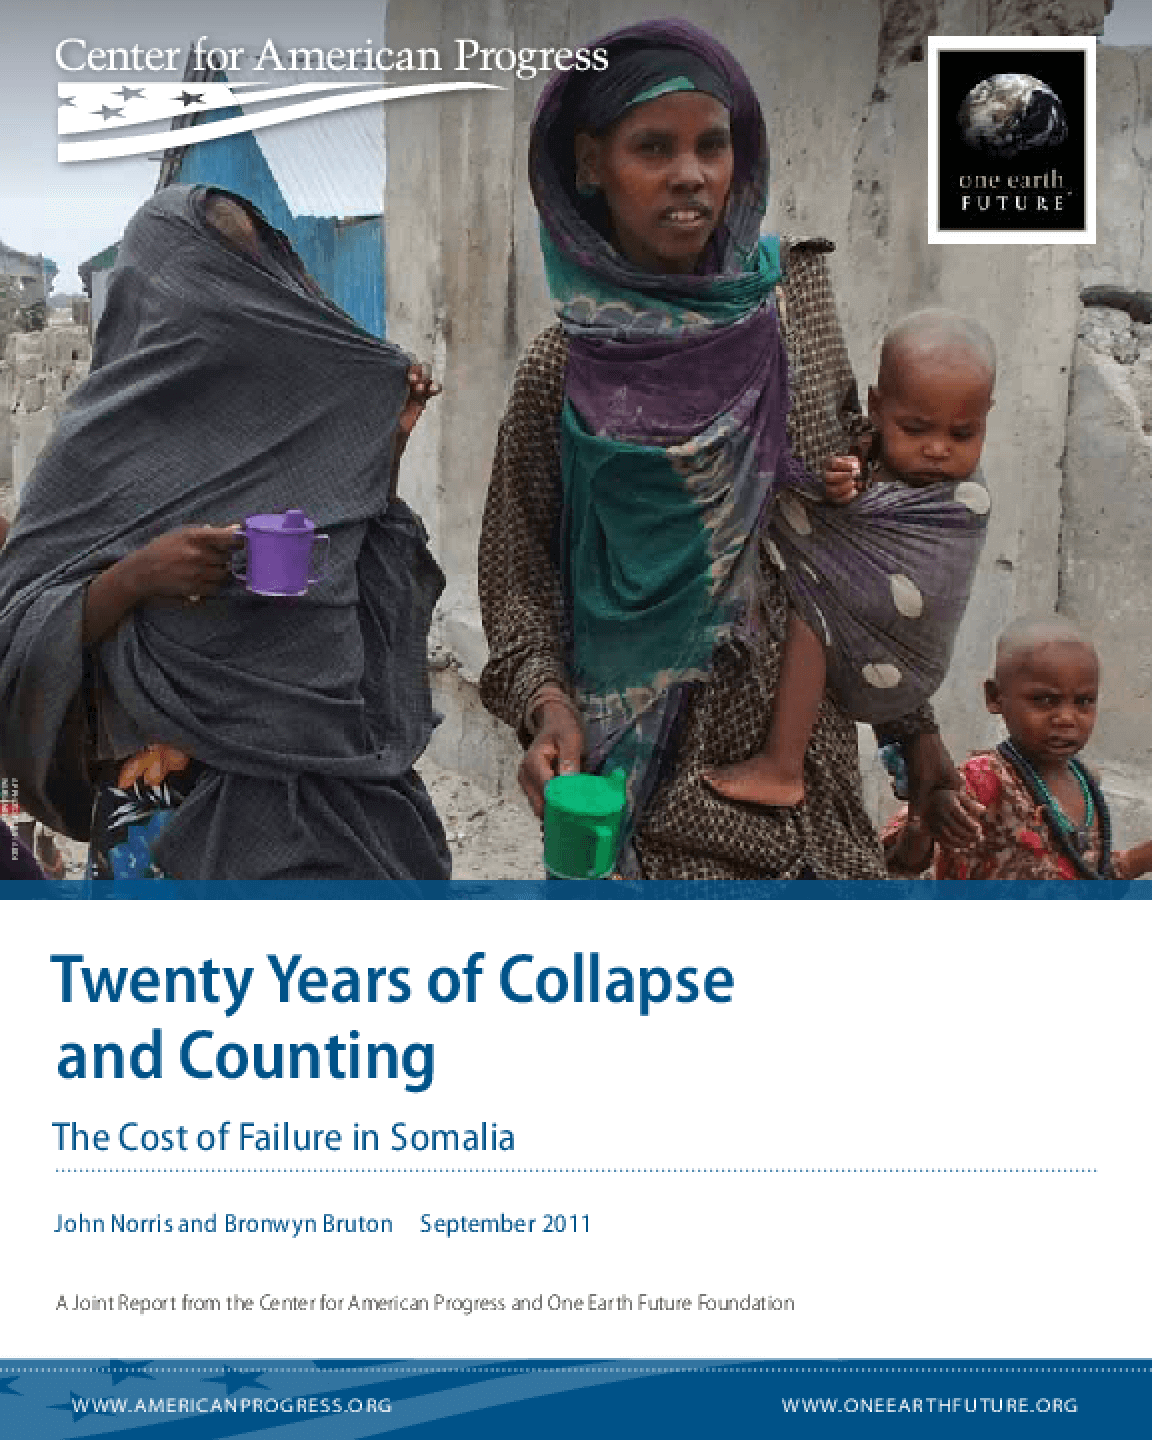 Twenty Years of Collapse and Counting: The Cost of Failure in Somalia